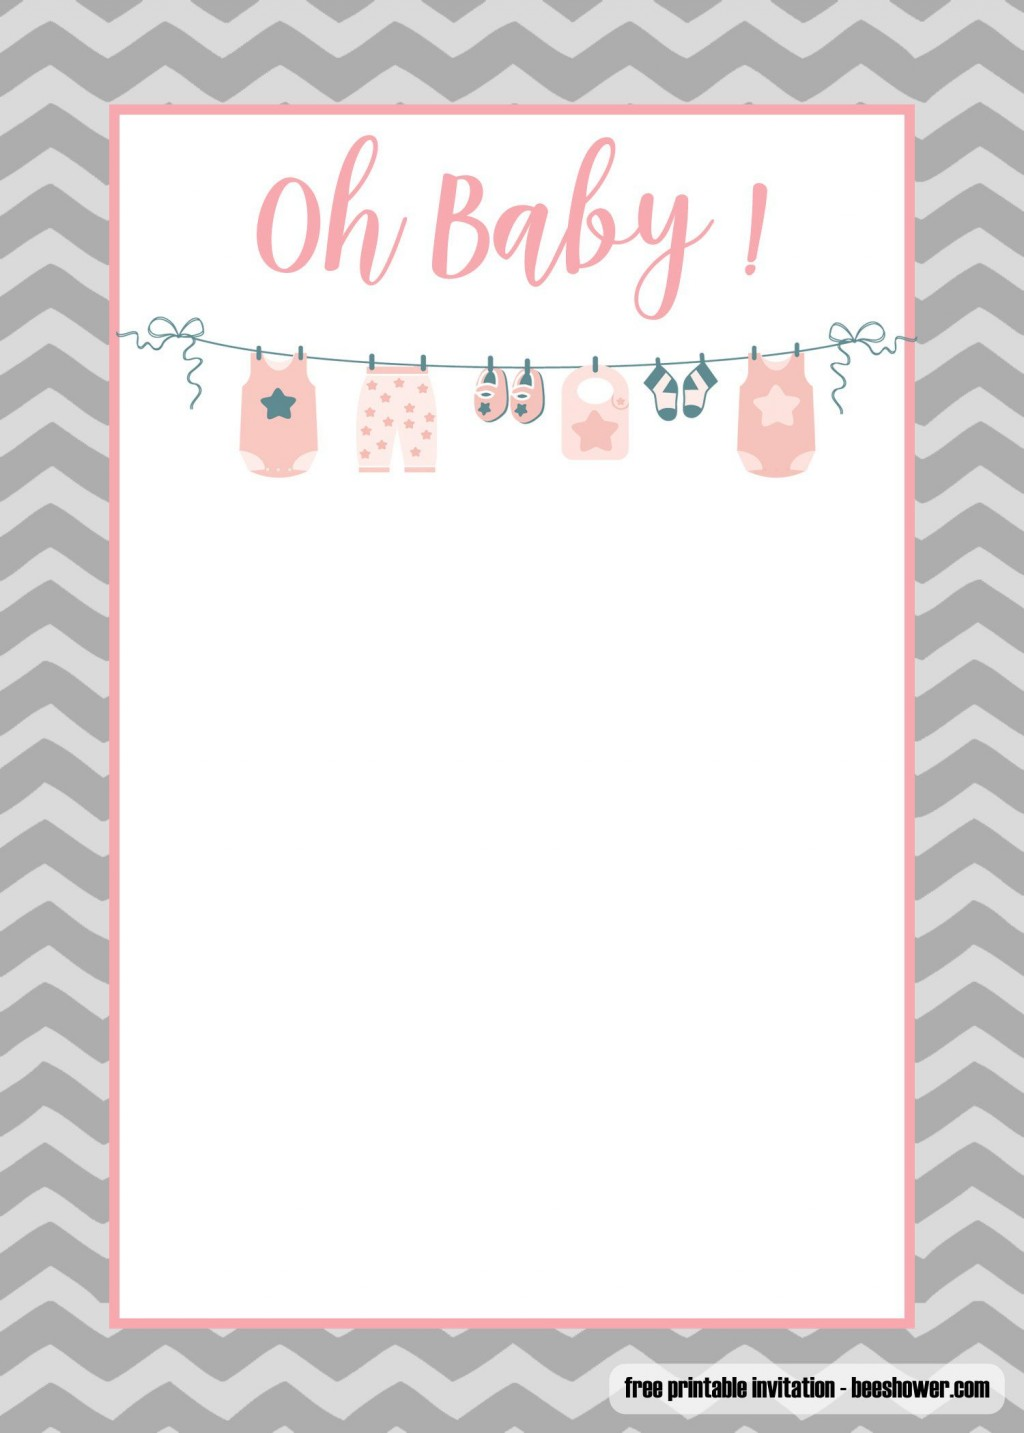 006 Incredible Baby Shower Invite Template Word High Definition  Invitation Wording Sample Free ExampleLarge